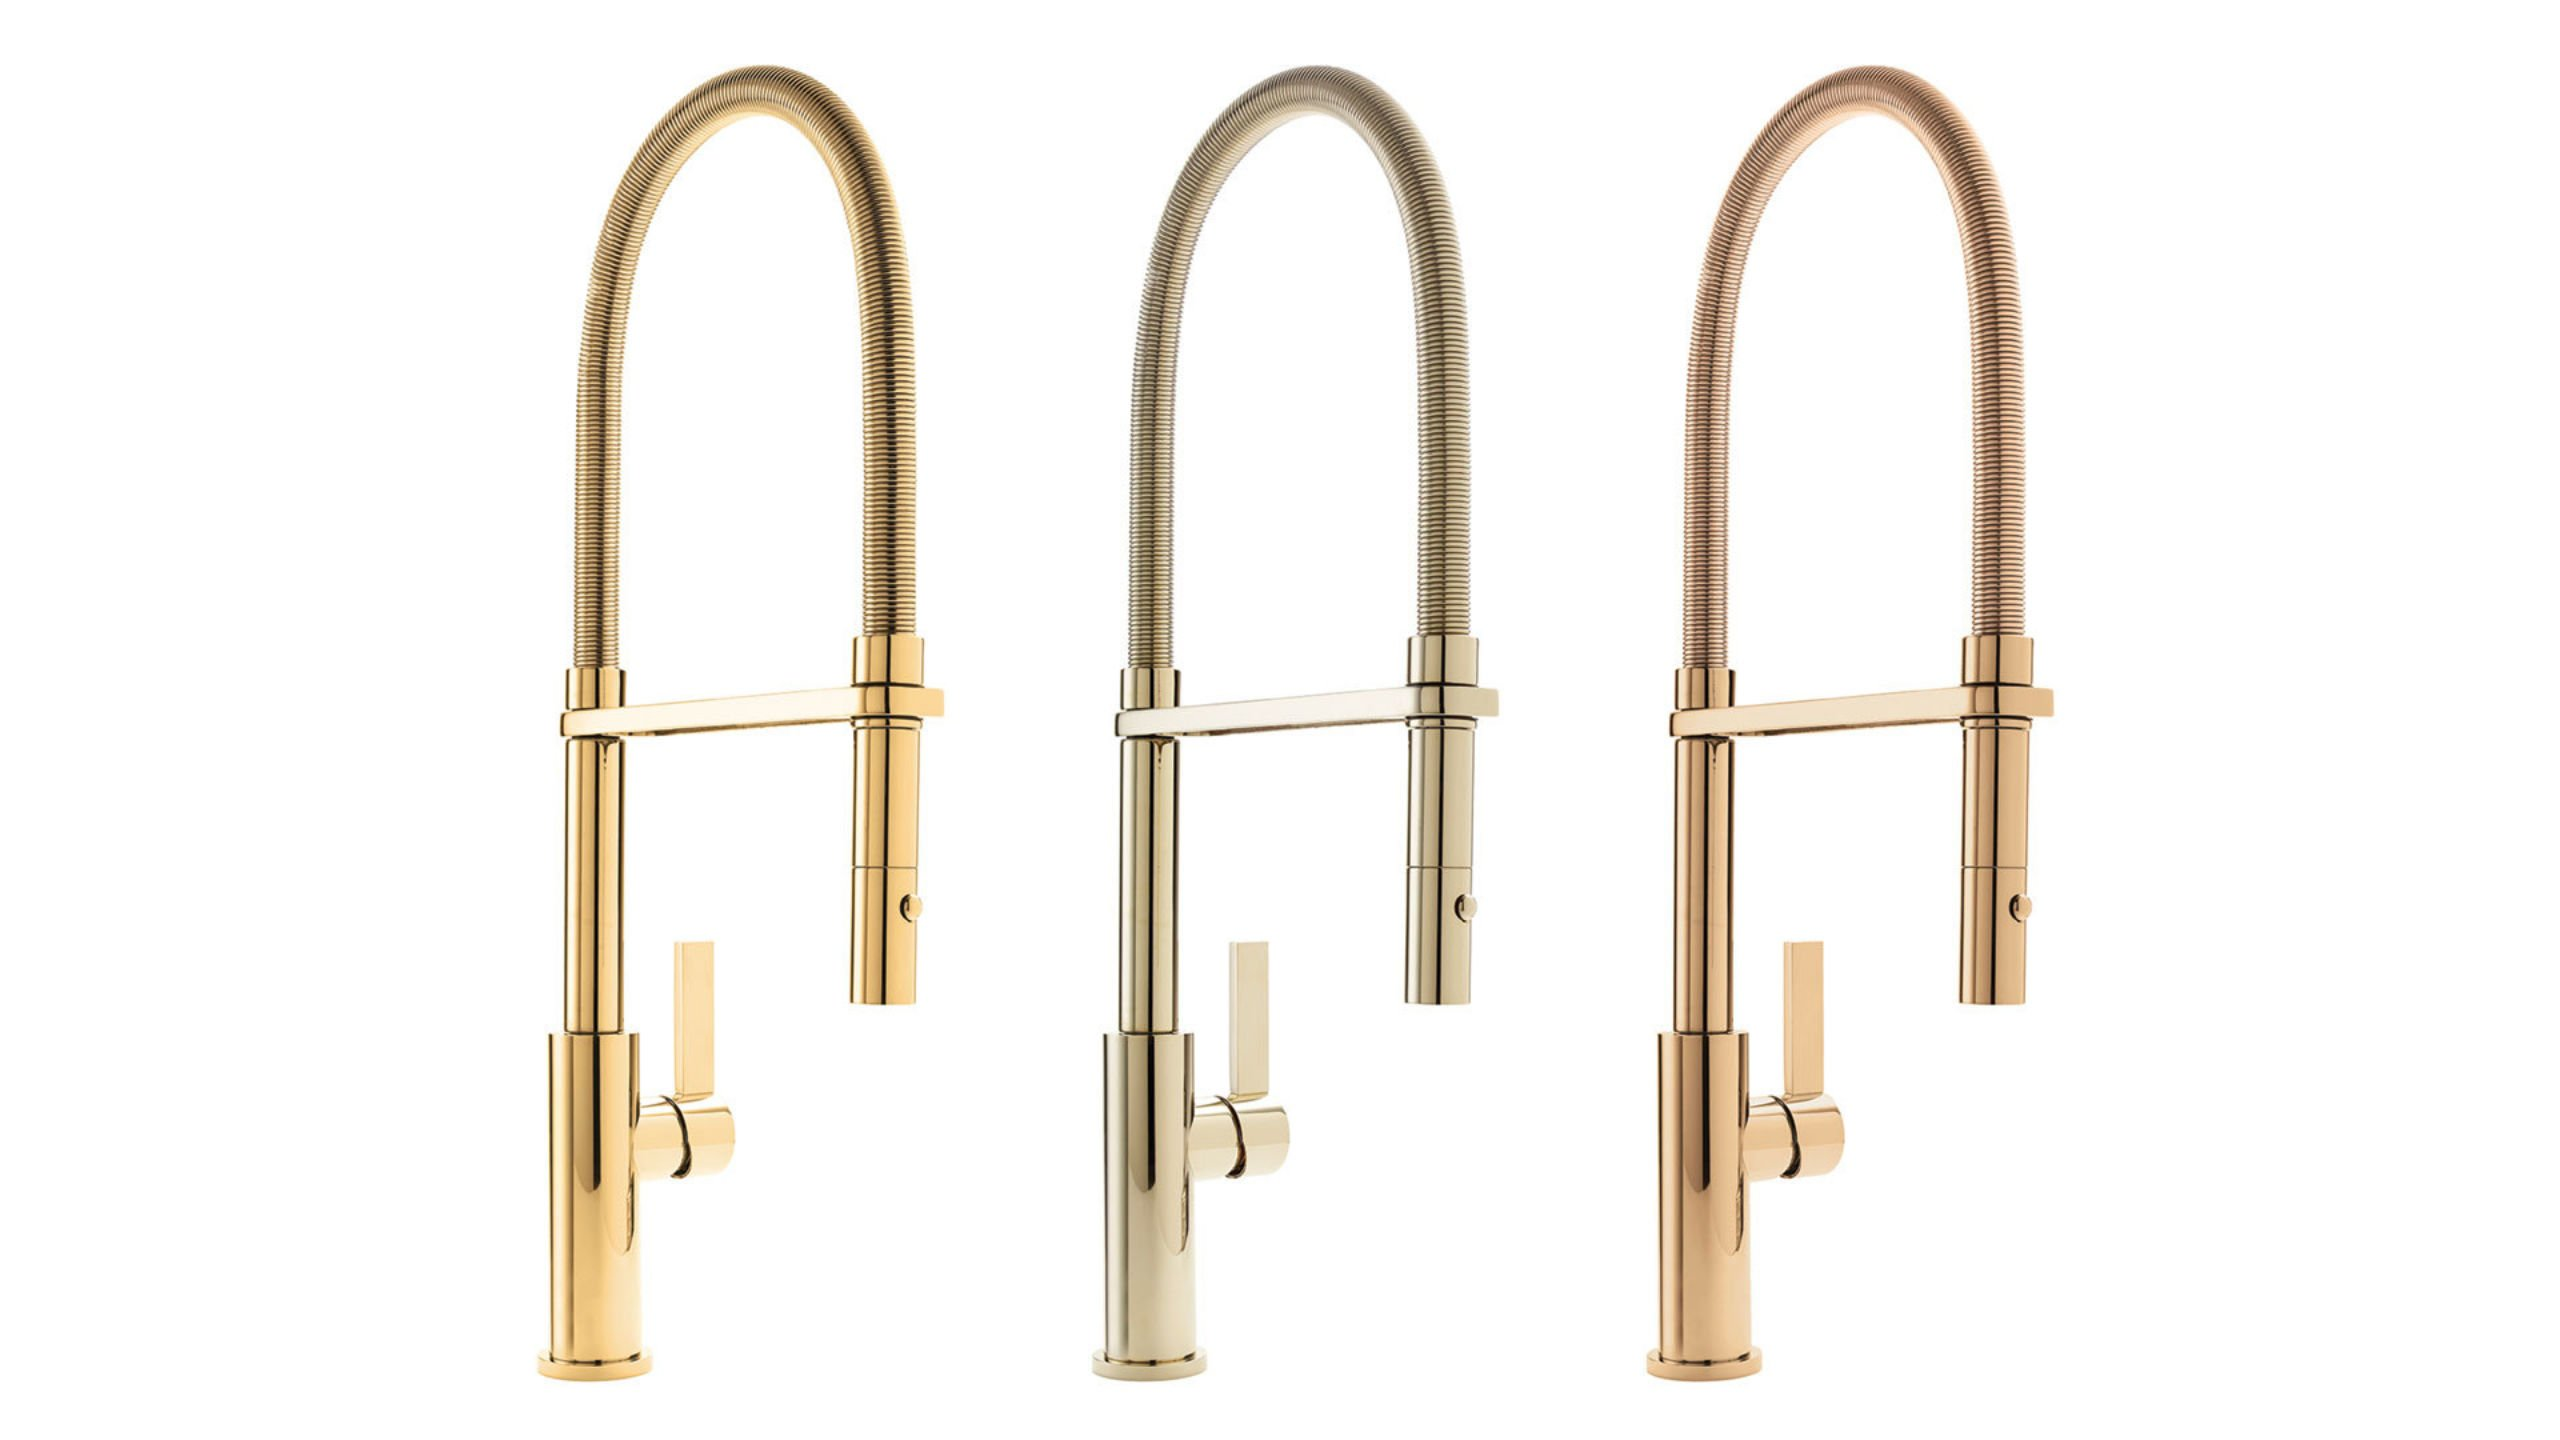 Kitchen Culinary faucets in polished gold brass and nickel